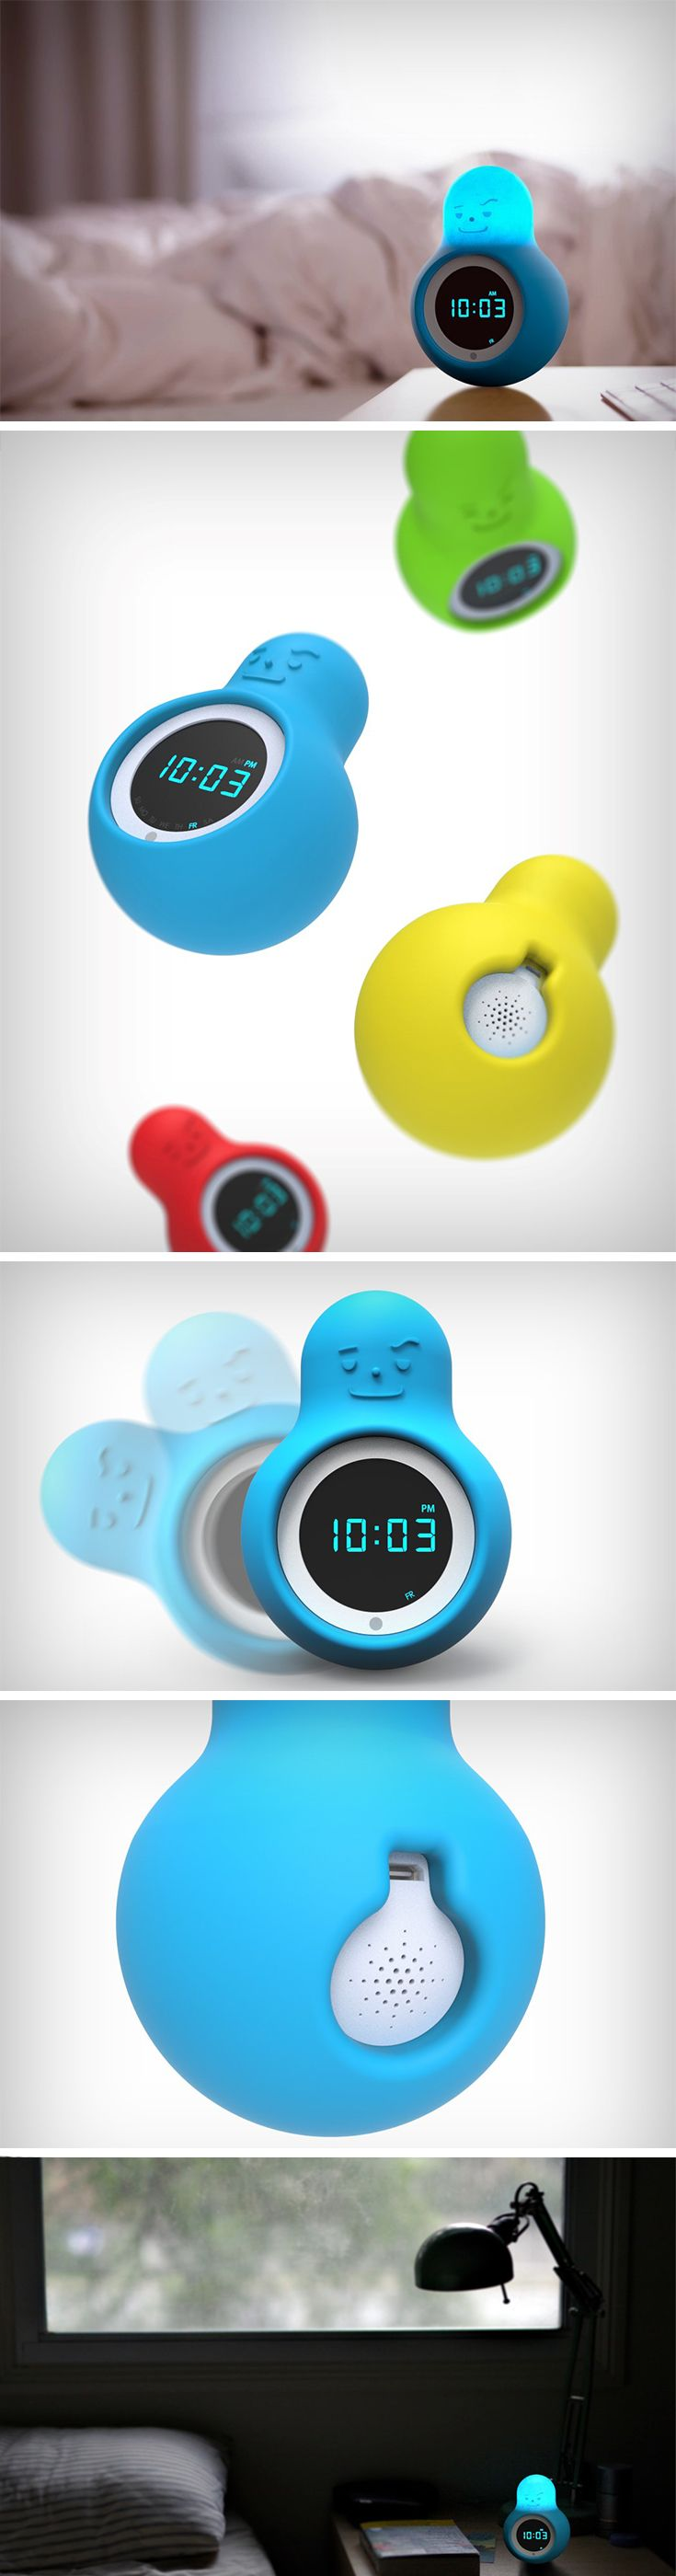 Mr. Wakey's the kind of alarm that will do its job regardless of the user's experience with the product. Whether you love it or hate it, the Mr. Wakey sticks to its design brief of getting you wide awake and even out of bed! The alarm clock comes in a bulbous roly-poly toy shape that stays upright no matter what and is designed to take all your frustration because the only way you can switch the alarm off is by flinging it at a wall.